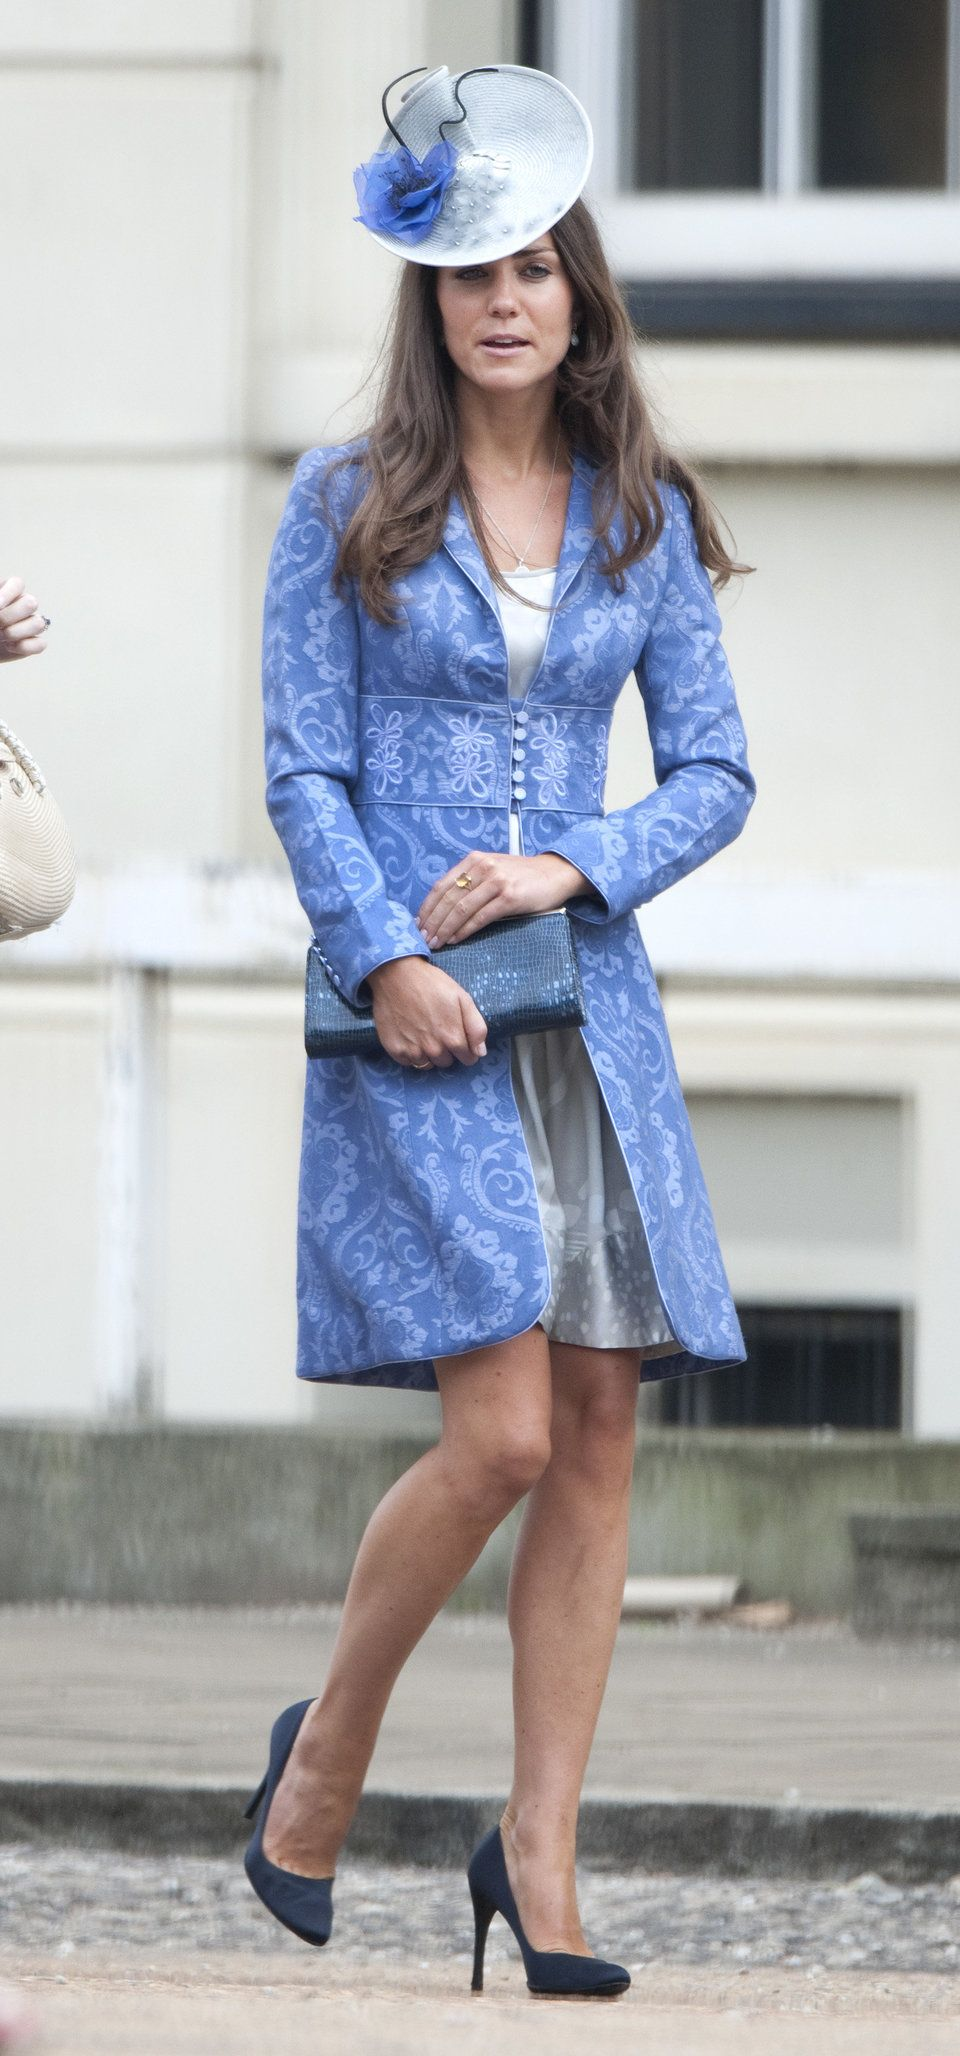 6 Trends Kate Middleton Never Wears Anymore